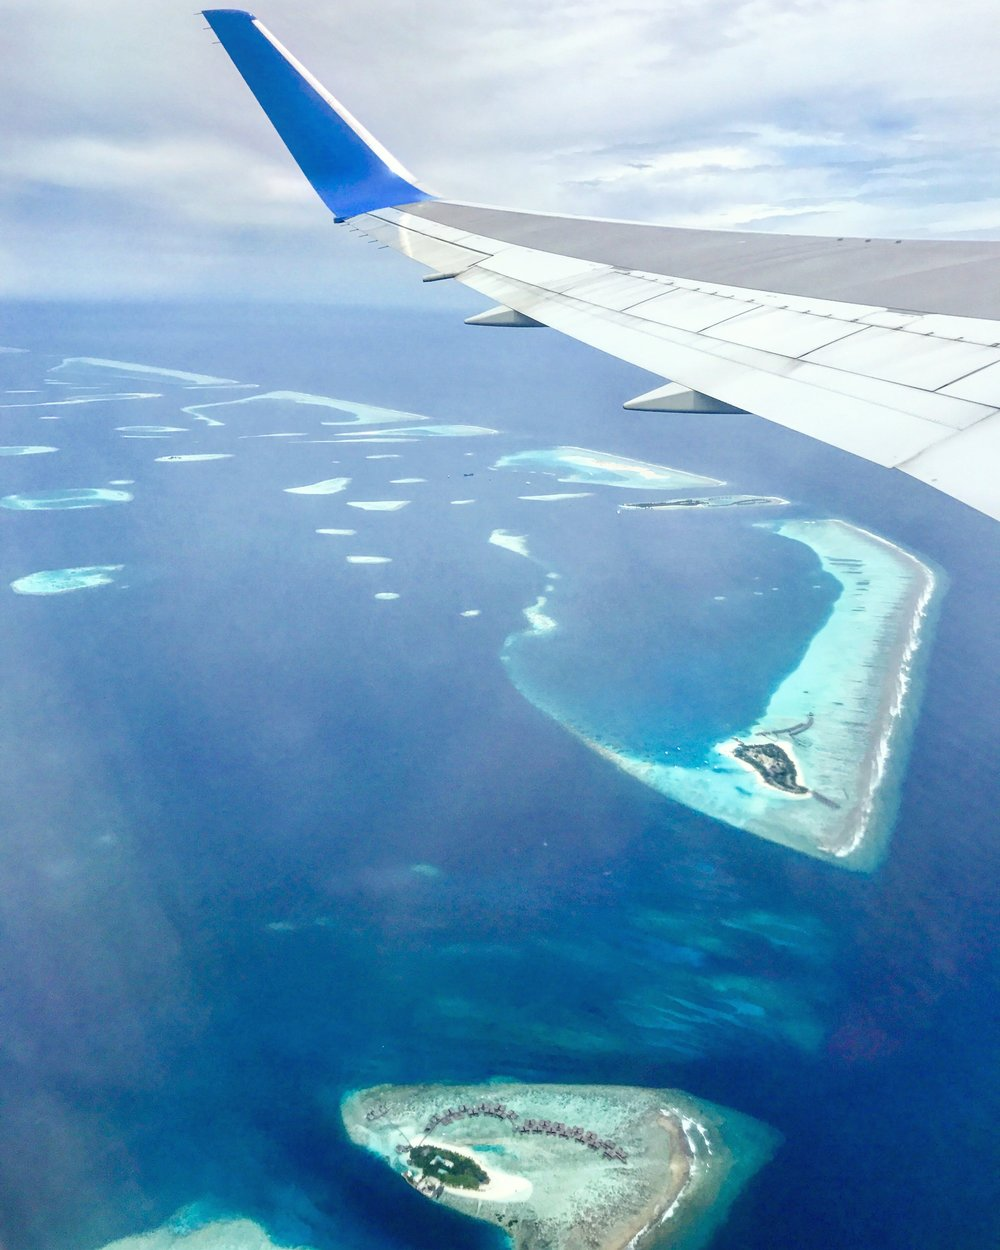 The view flying into the Maldives is divine - travel in shoulder seasons for the best flight & accommodation deals!